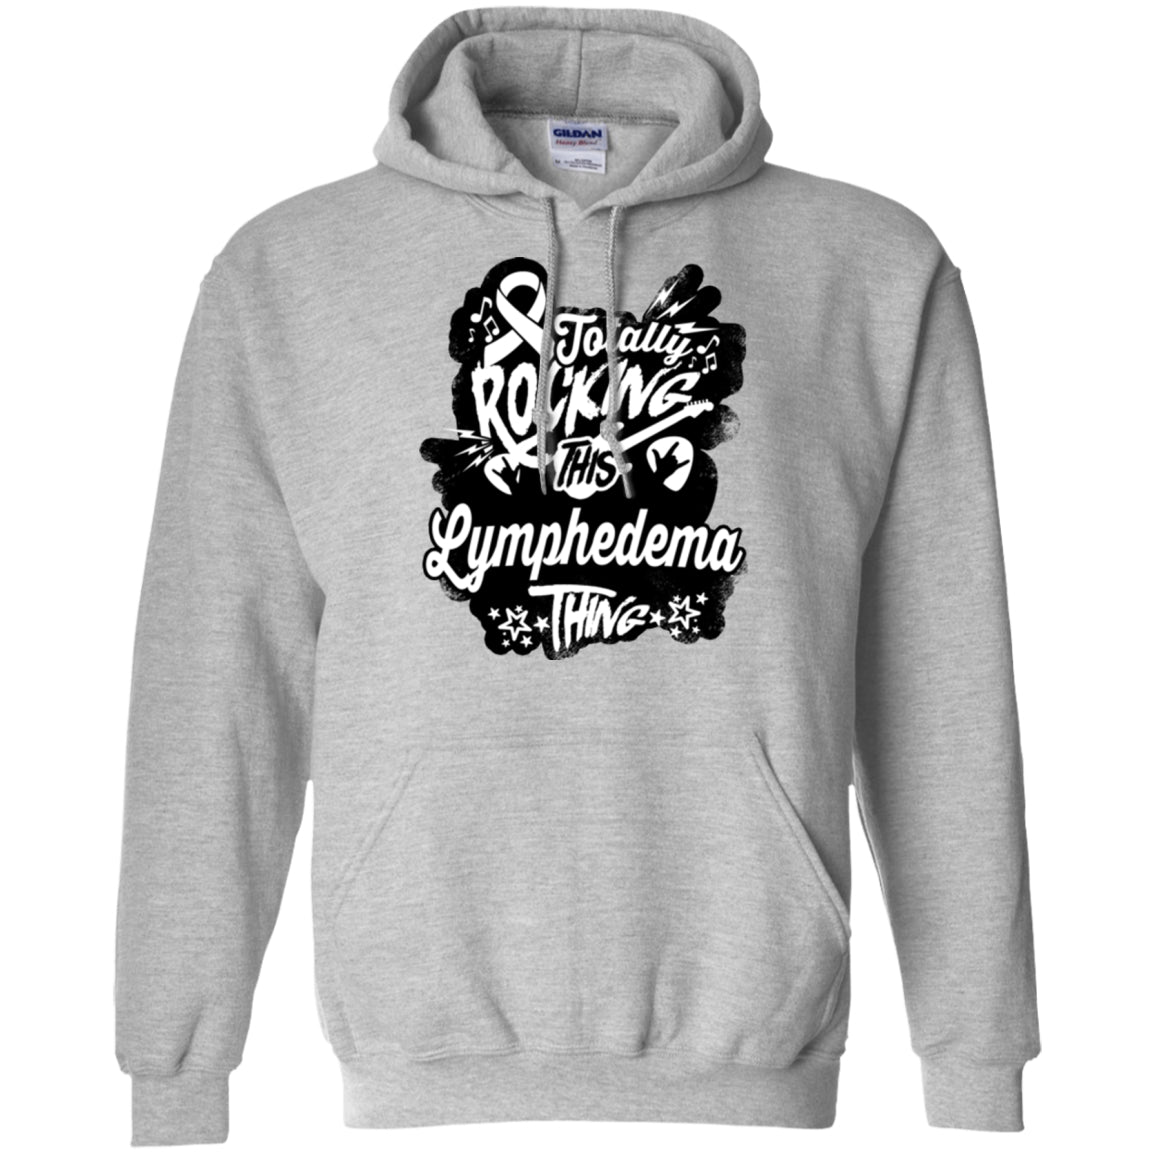 Rocking Lymphedema Pullover Hoodie 8 oz. - The Unchargeables